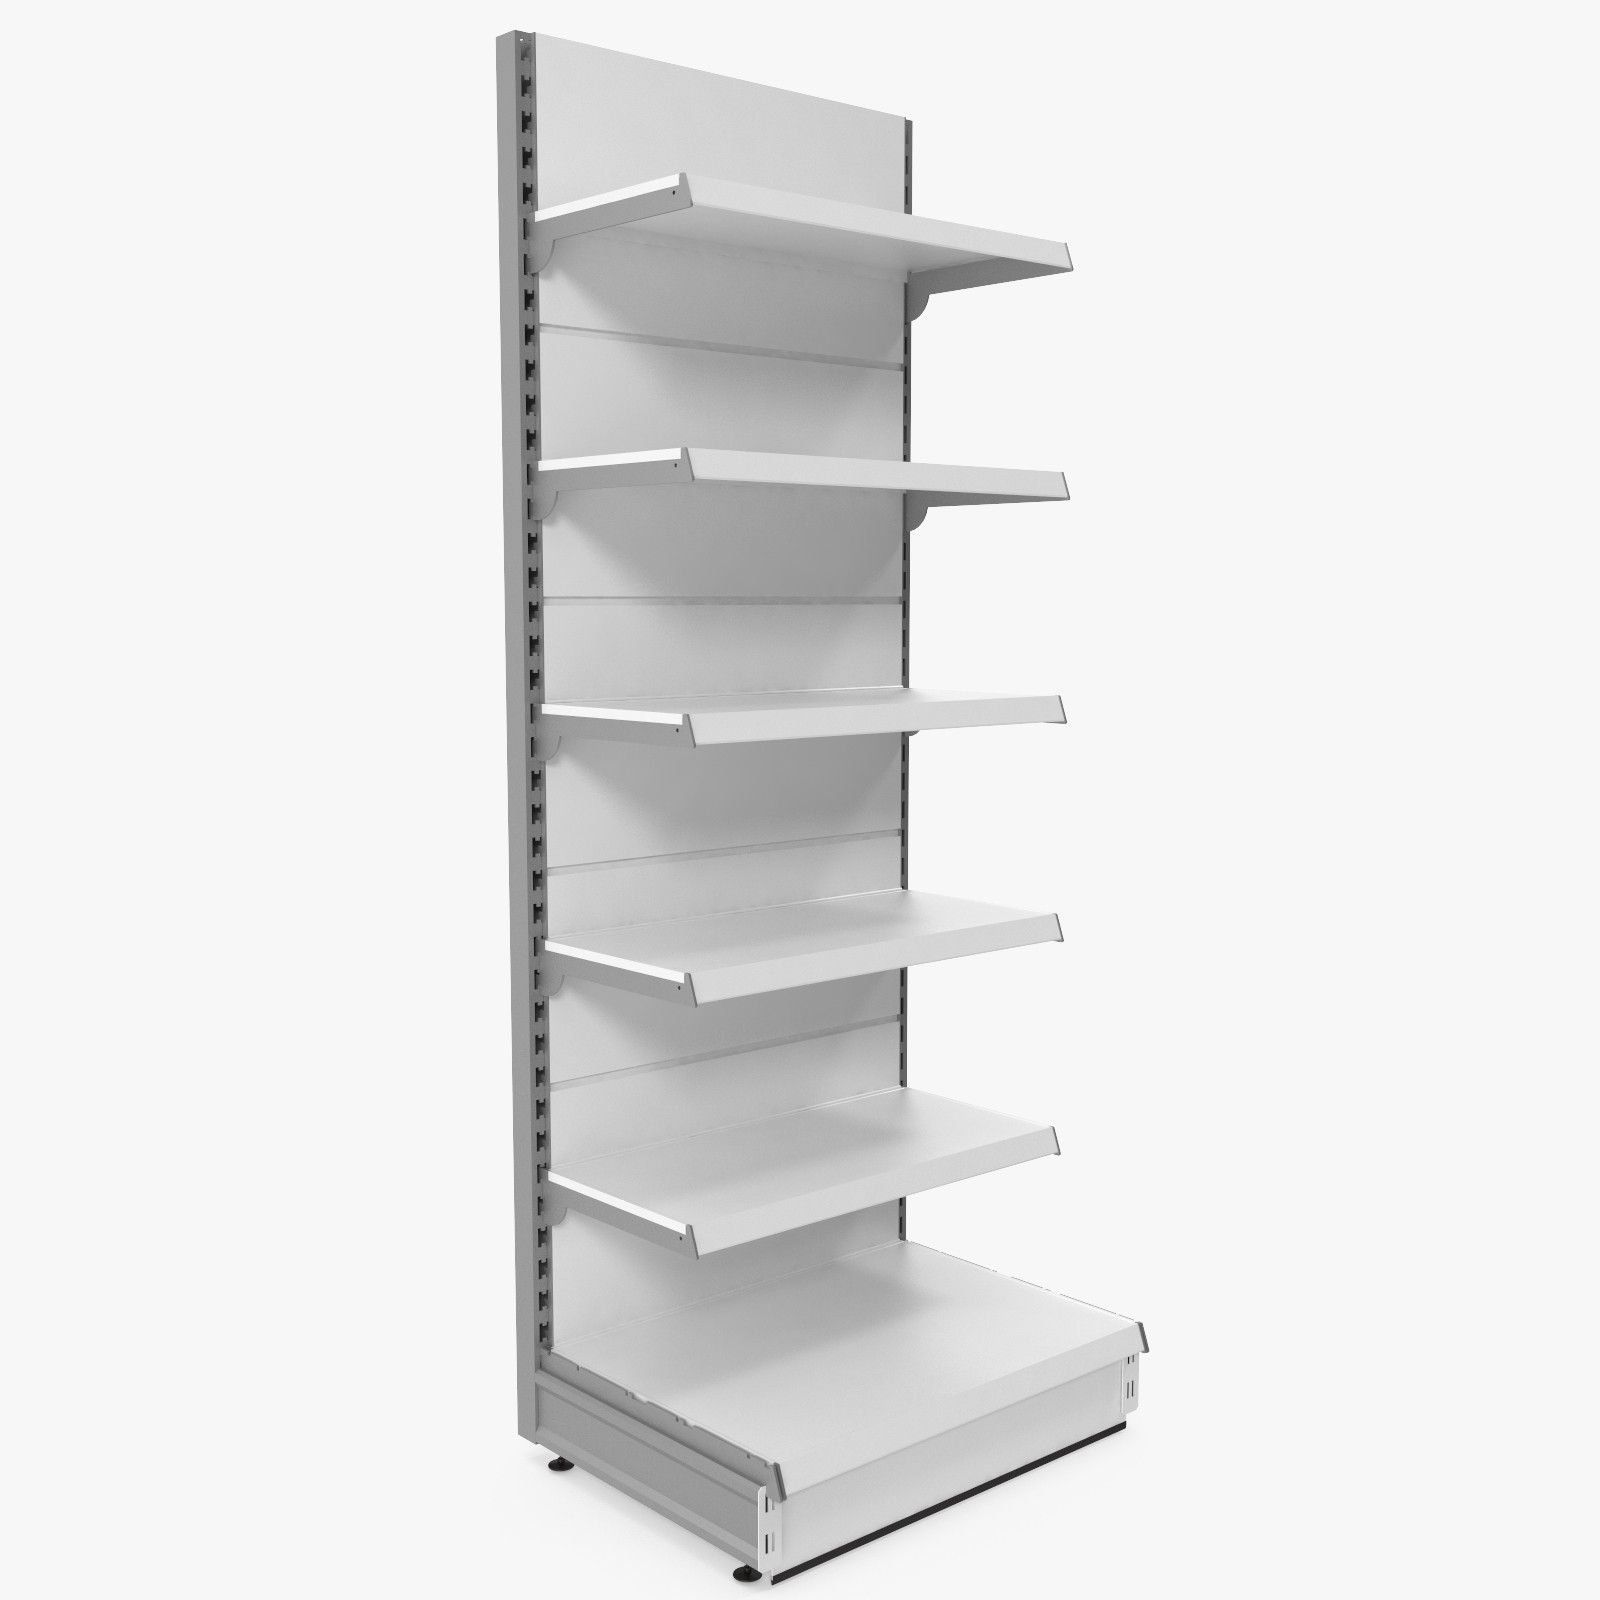 3D Supermarket Shelf Model  3D Model